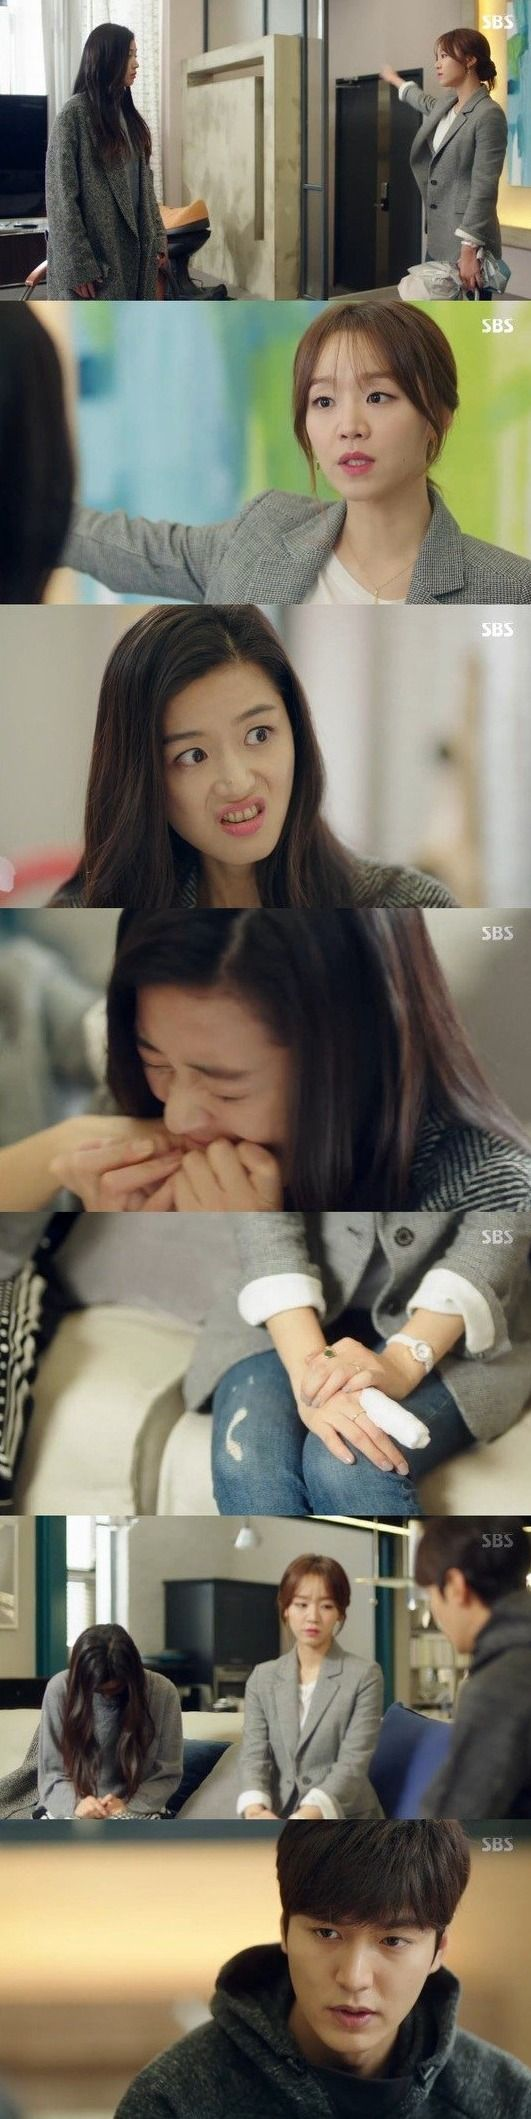 [Spoiler] Added episode 5 captures for the #kdrama 'The Legend of the Blue Sea'